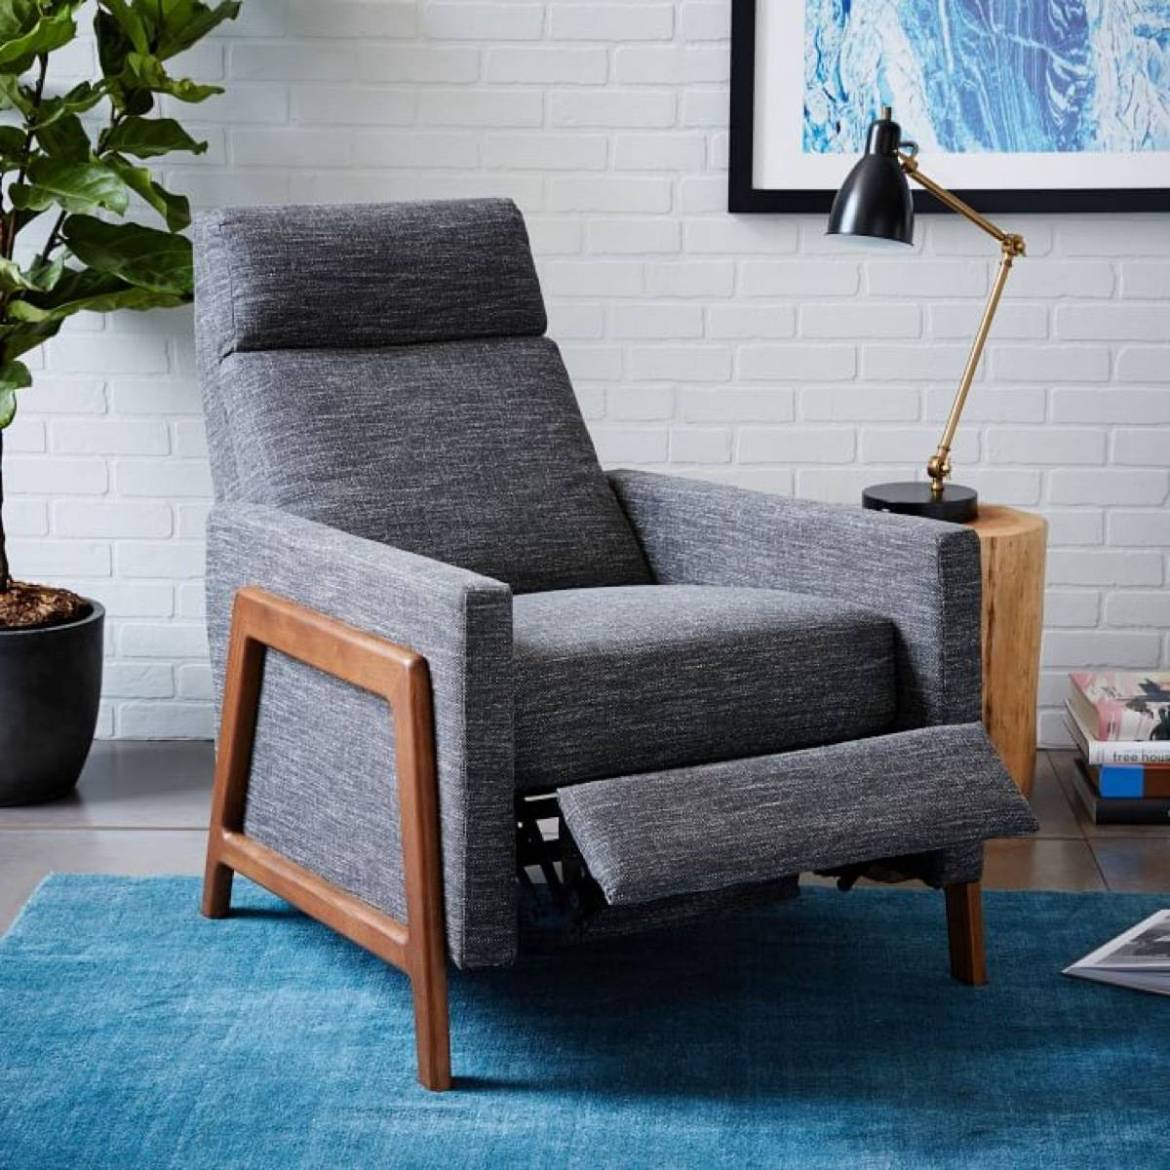 Get back pain relief from a recliner, like this gray one from West Elm